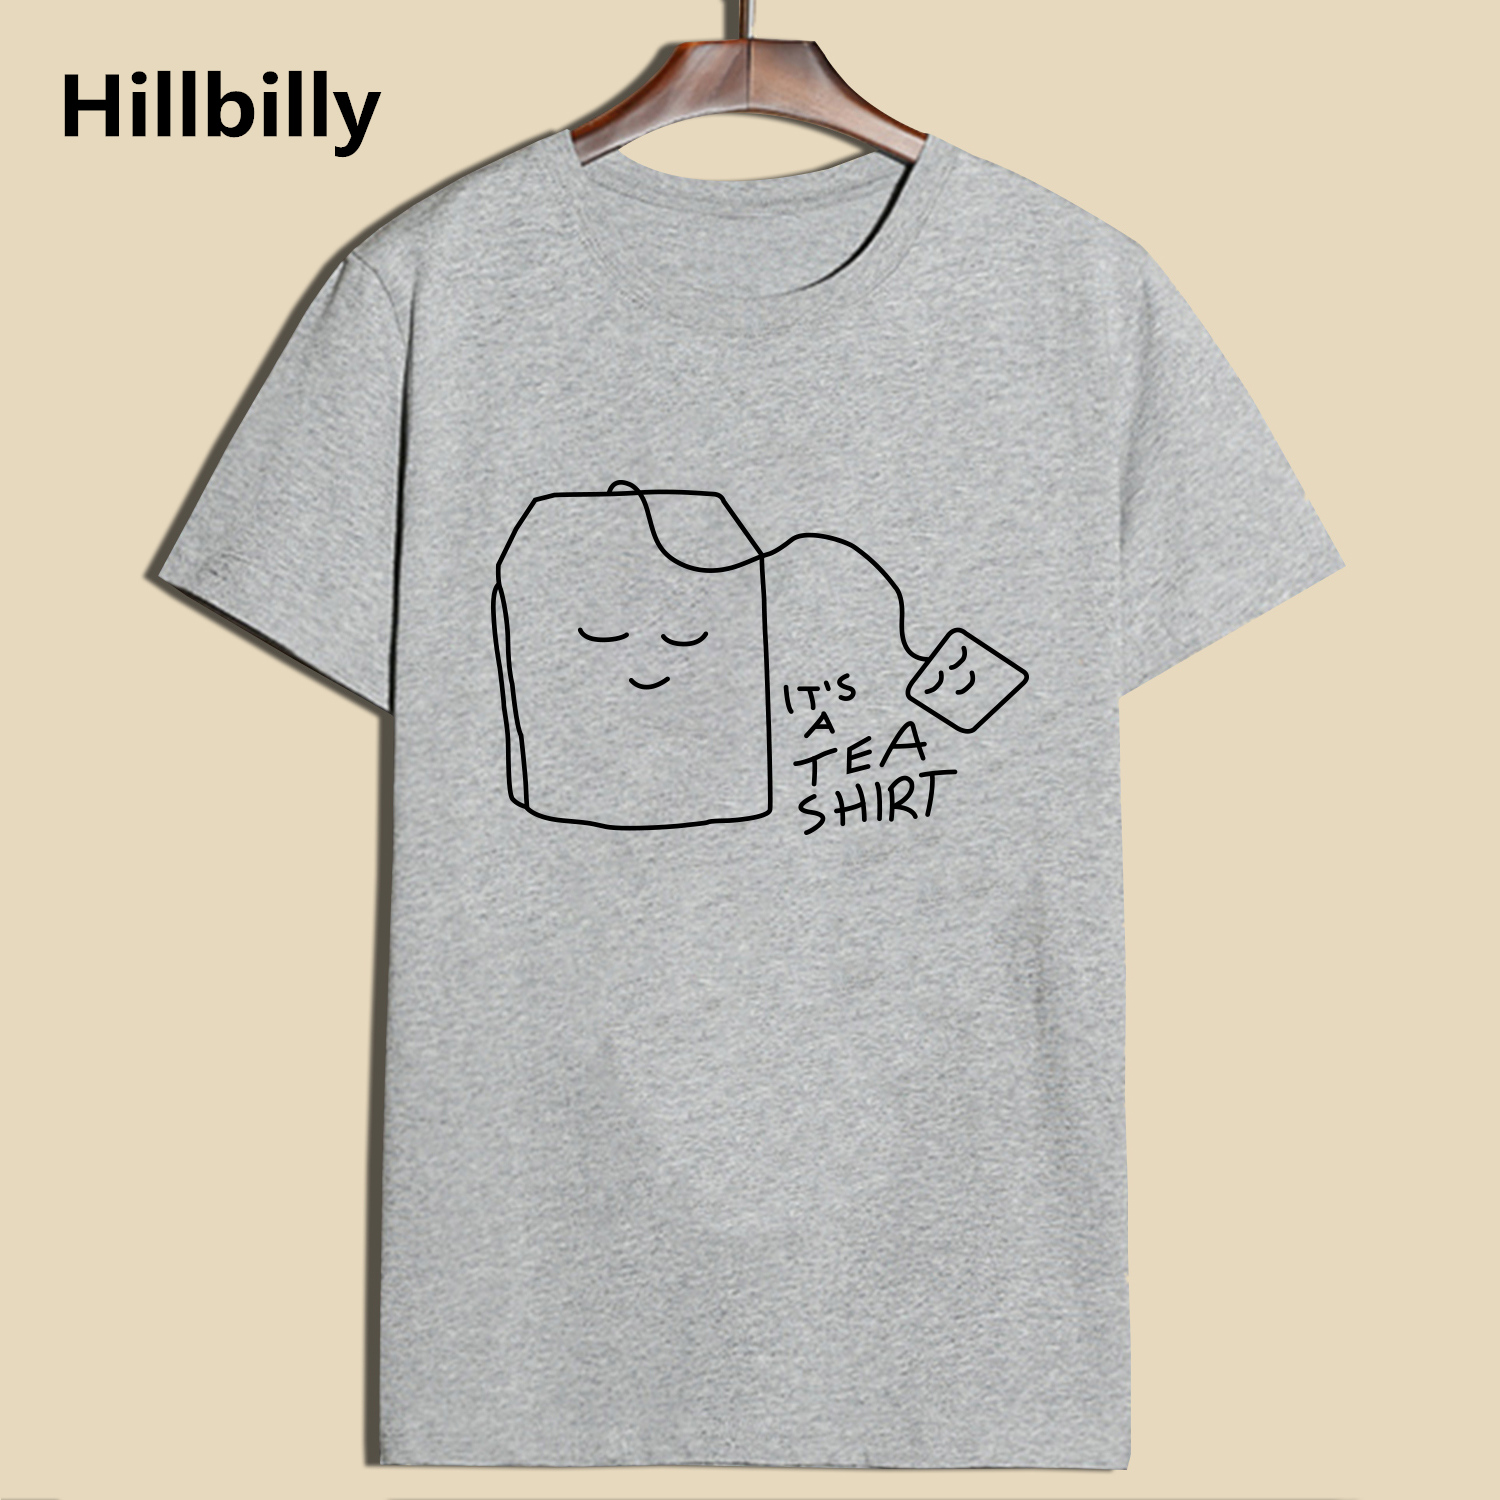 Hillbilly Men's   T  -  shirts   Funny Tea Printing   T     shirts   2017 Summer Cotton Short Sleeve O-Neck Male Casual Tees Size S-2XL